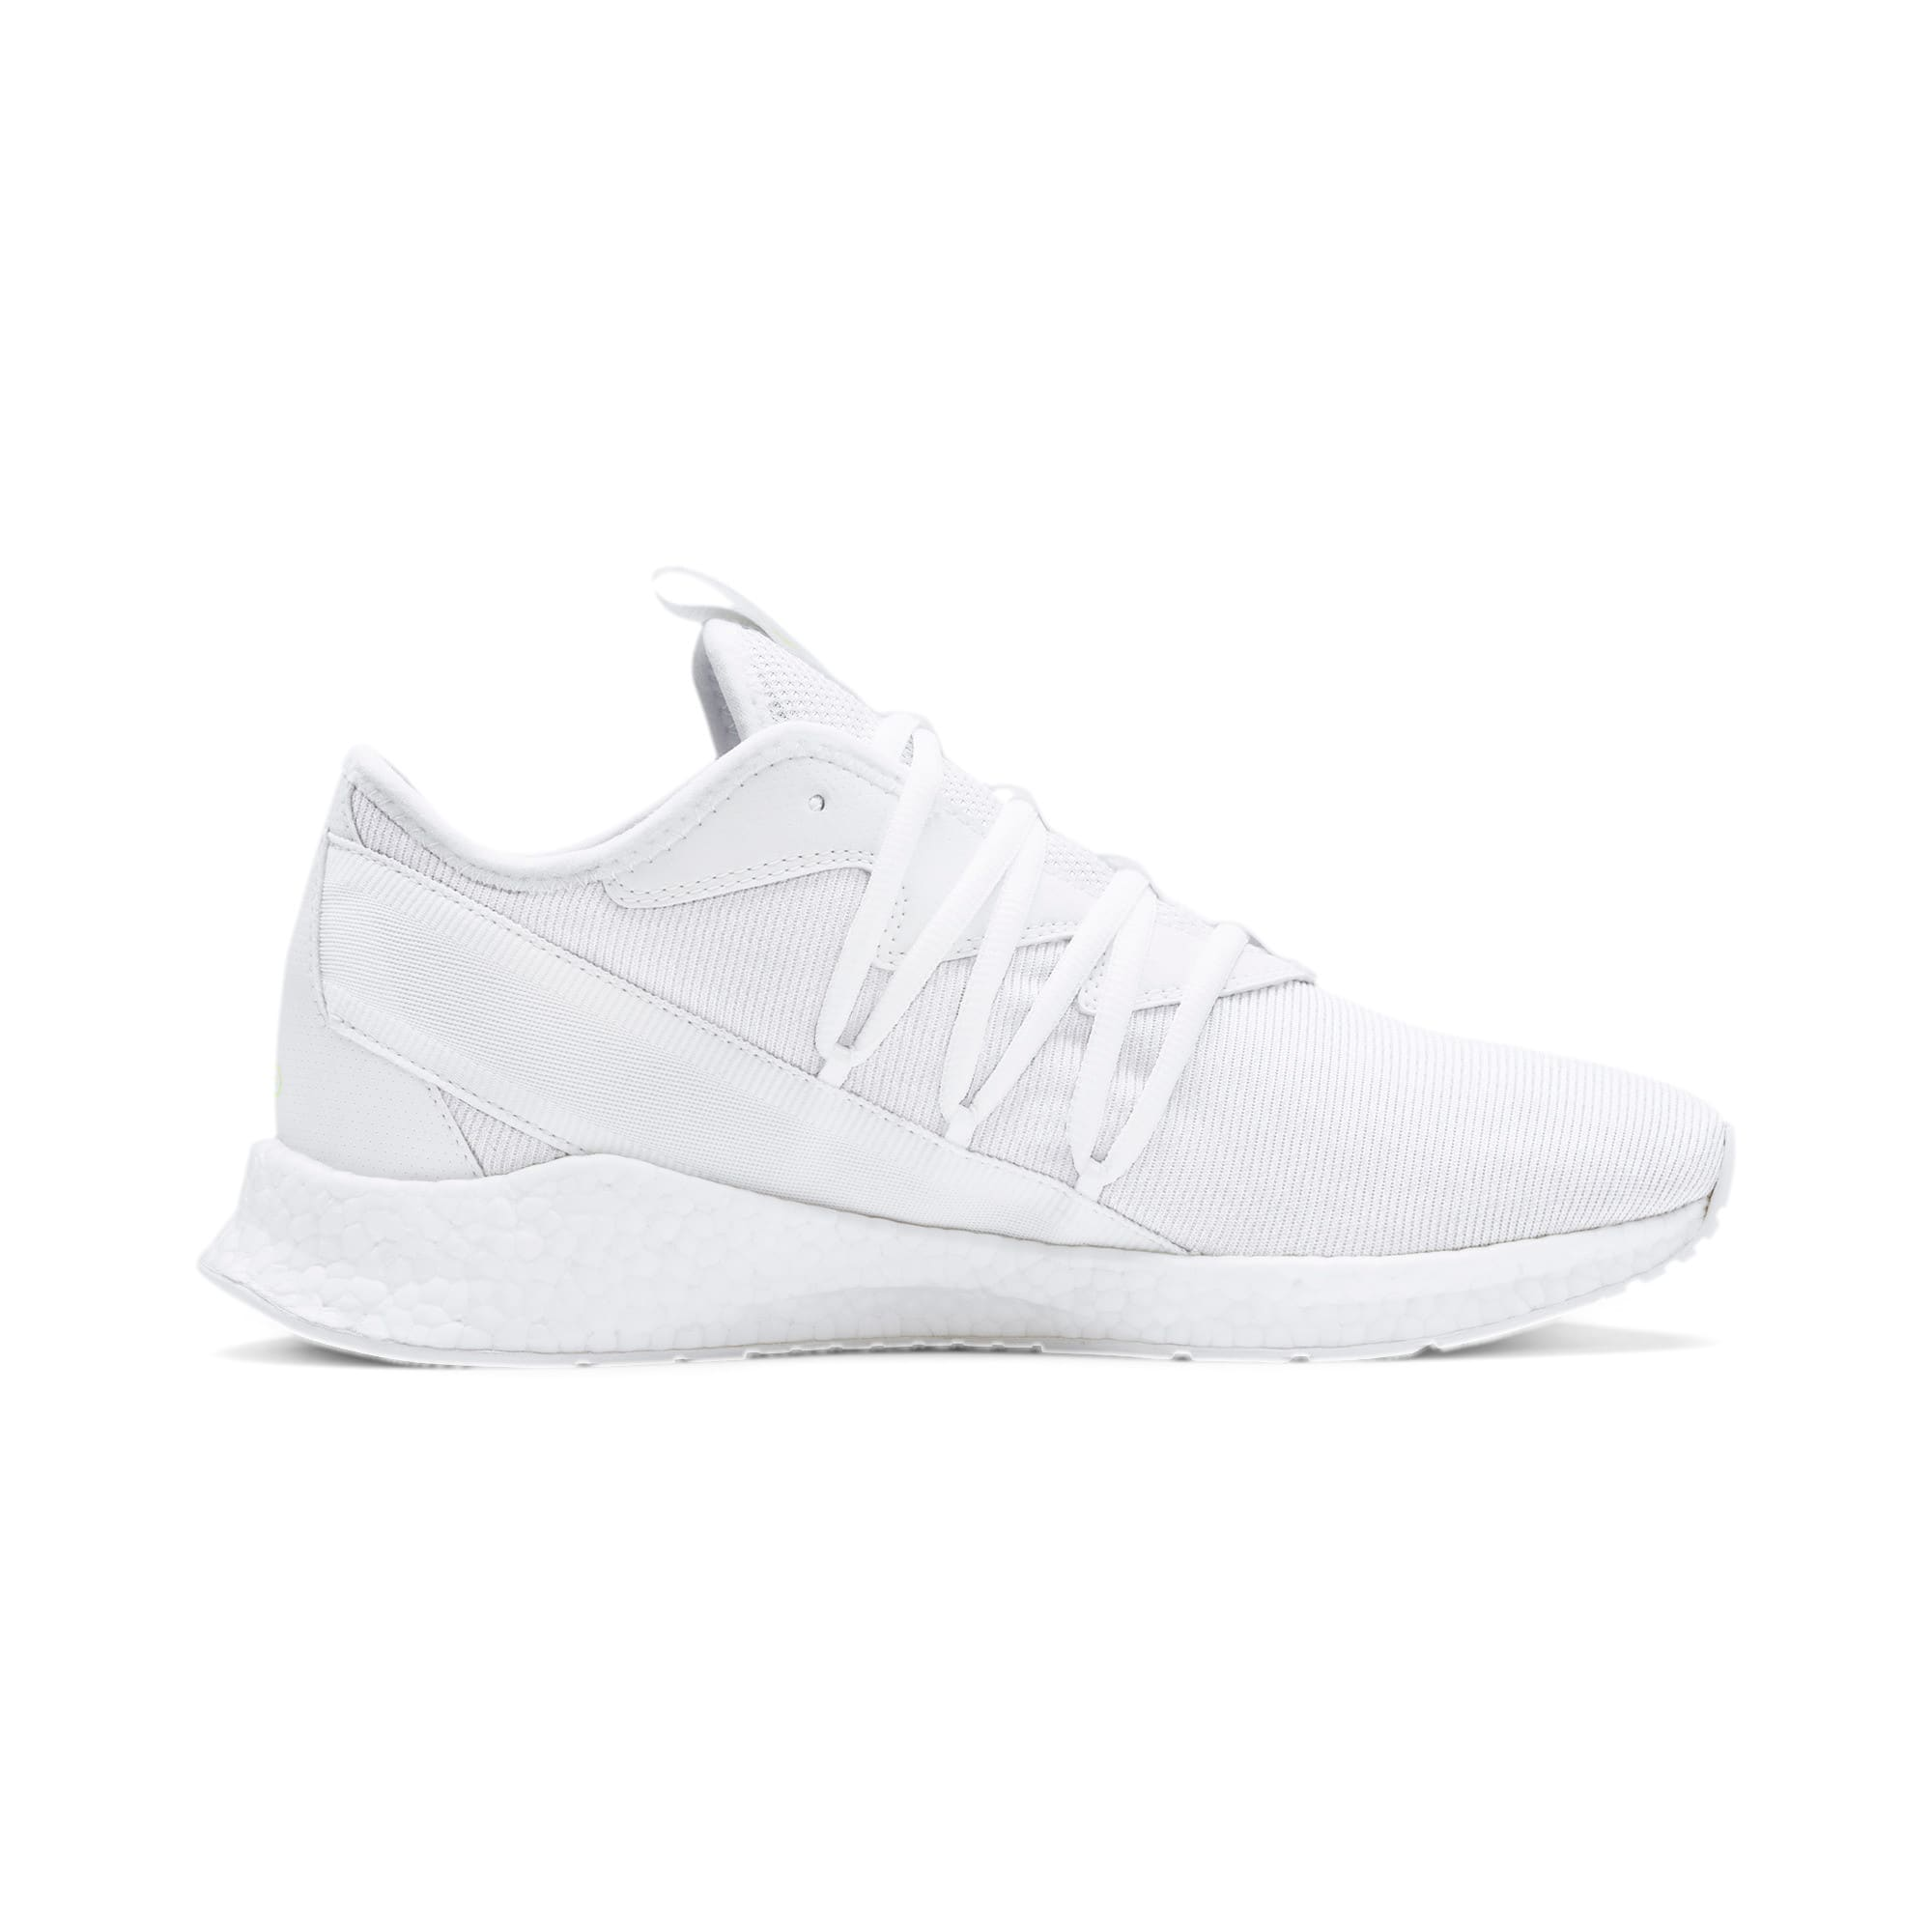 Thumbnail 6 of NRGY Star Knit Trainers, White-Glacier Gray-Yellow, medium